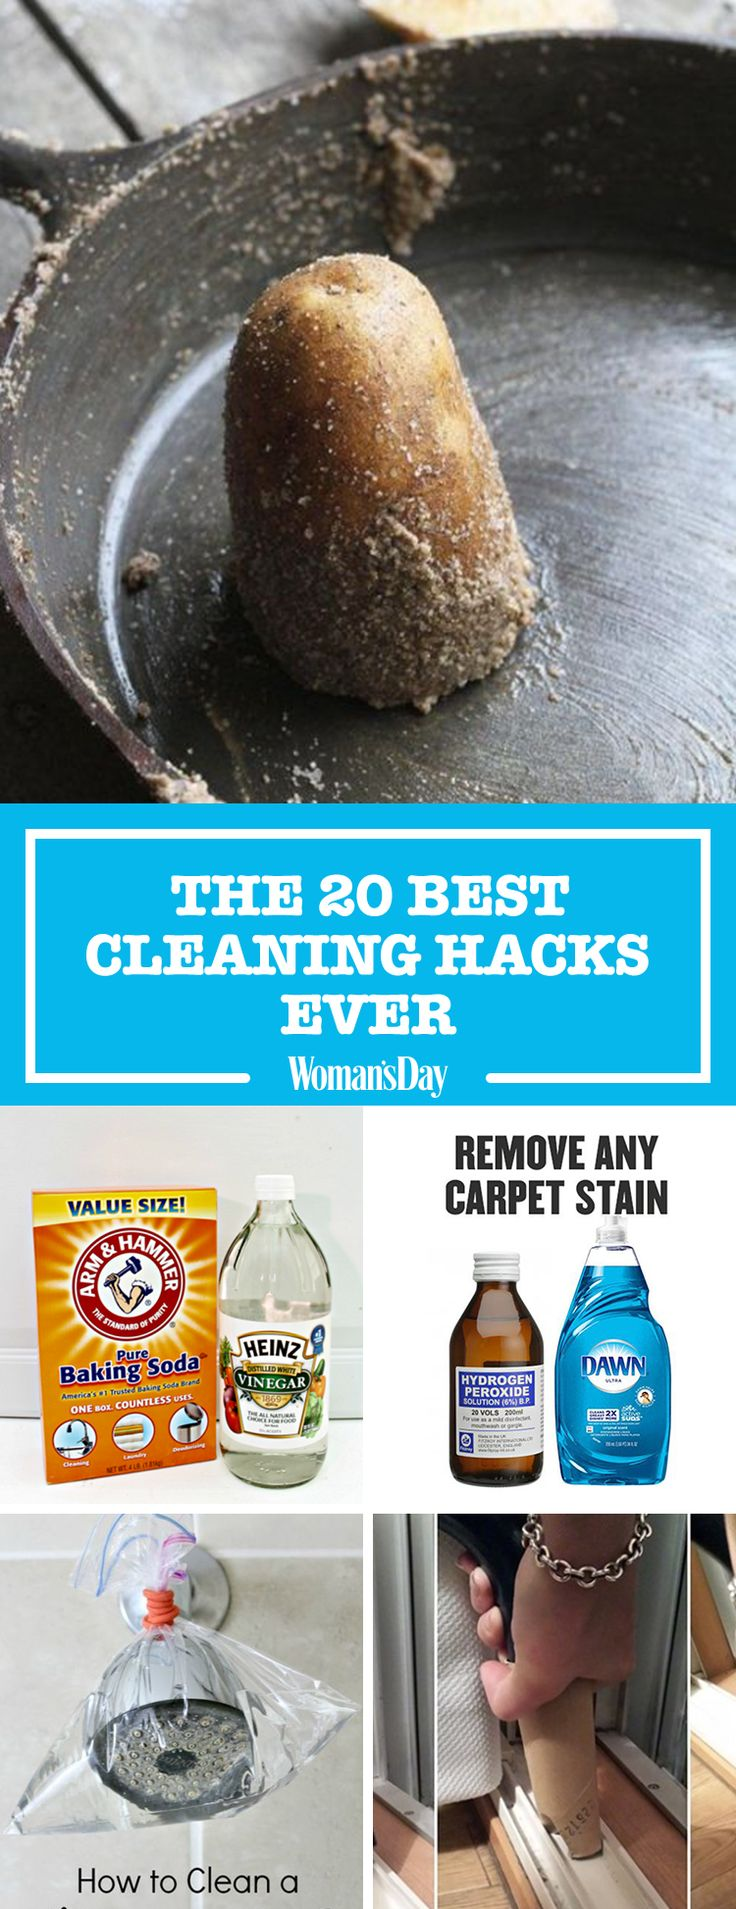 270 best home remedies, cleaning, organizing images on Pinterest ...